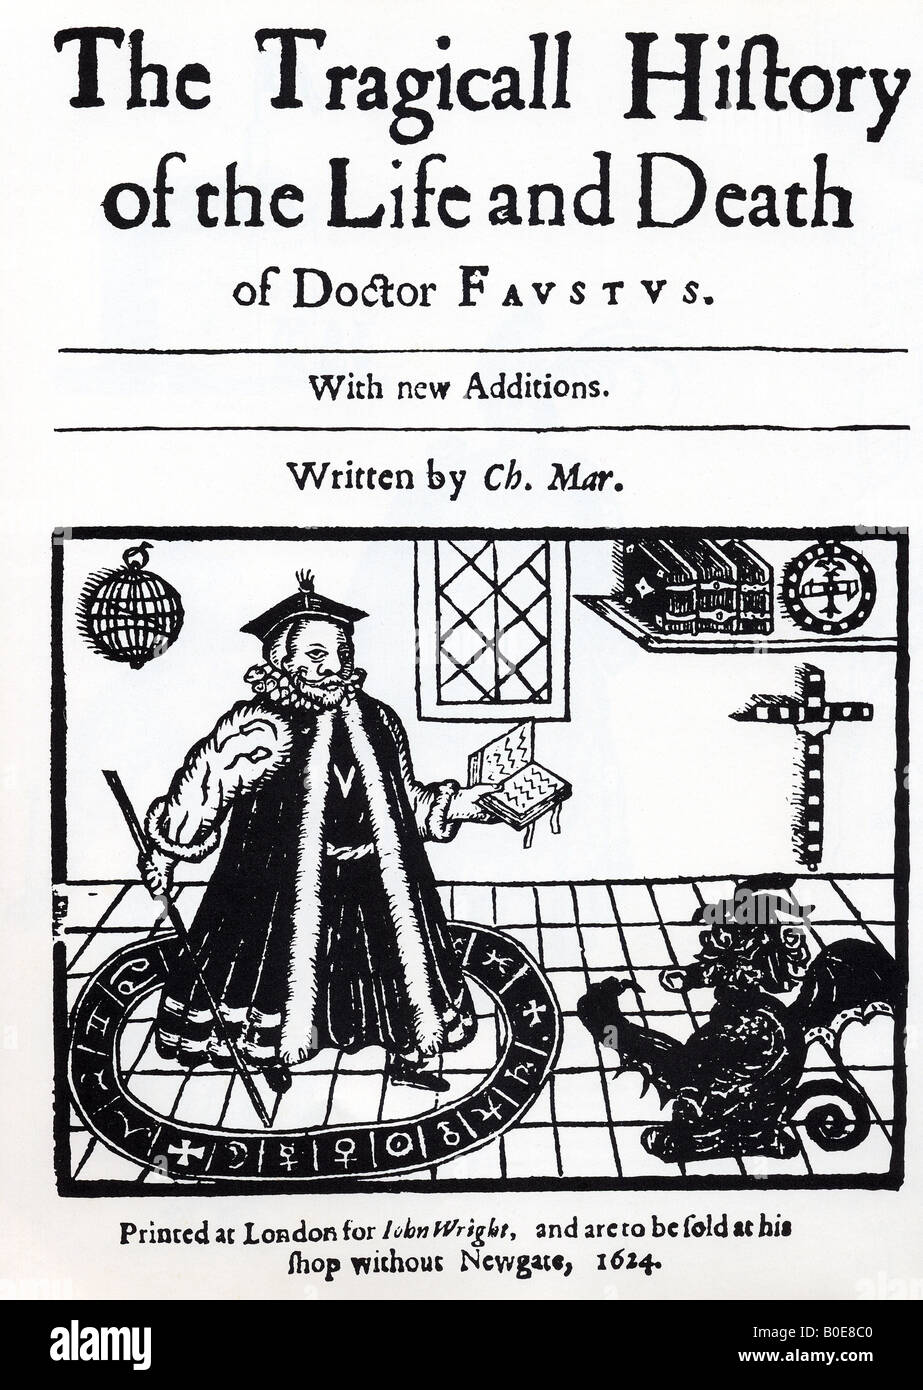 DR FAUSTUS frontespiece of the 1624 edition of Christopher Marlowe's play showing Faustus conjuring up Mephistopheles - Stock Image